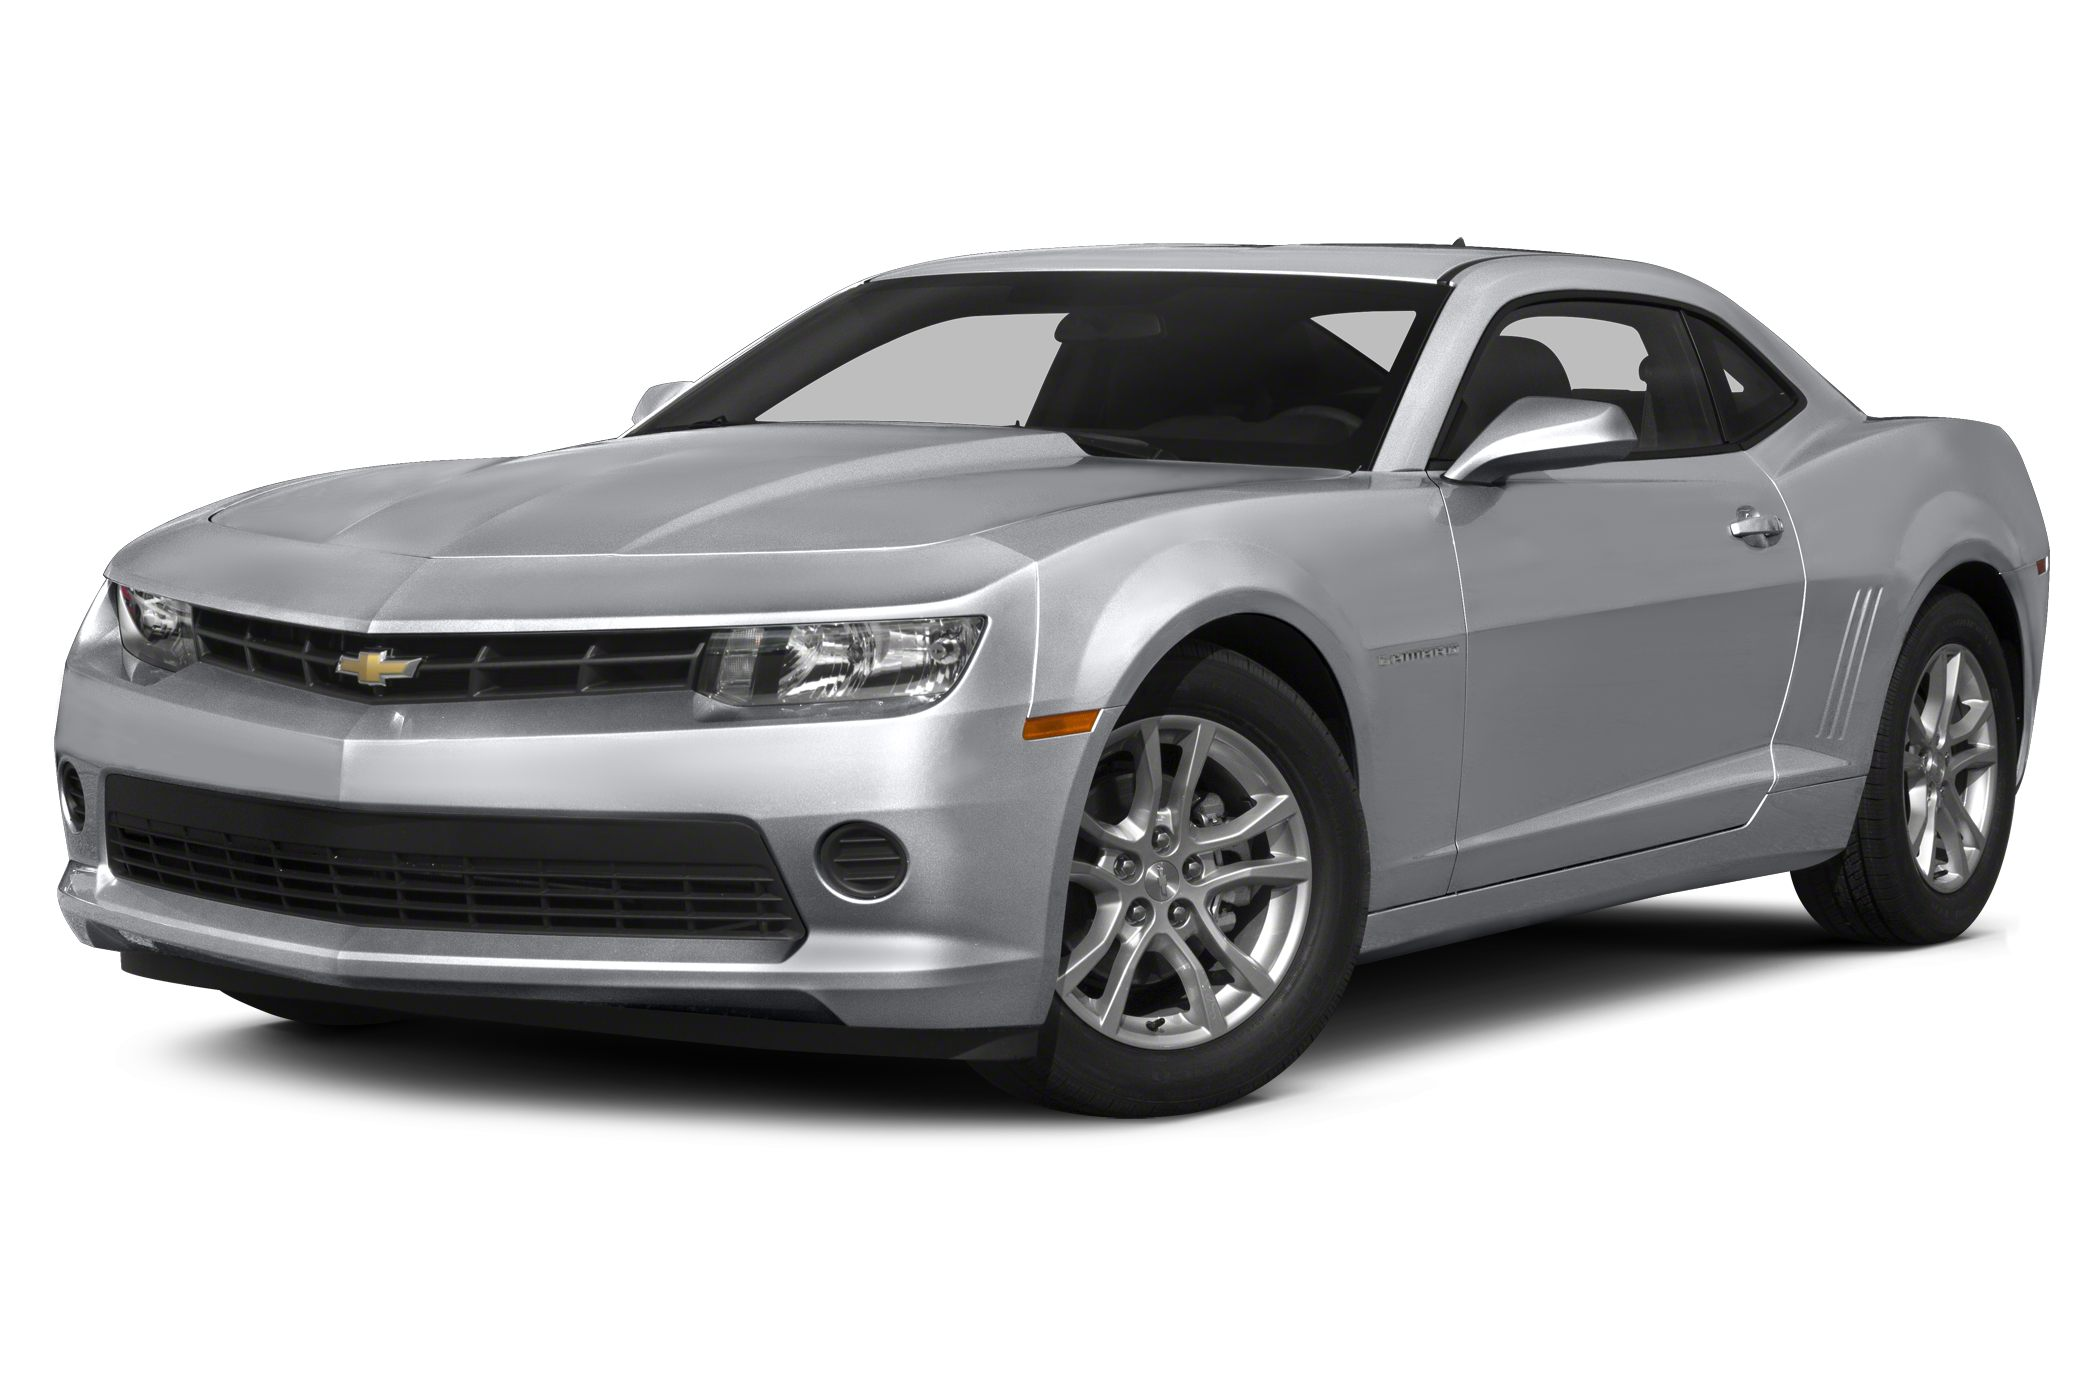 2015 Chevrolet Camaro 1LT Coupe for sale in Charlotte for $30,750 with 0 miles.